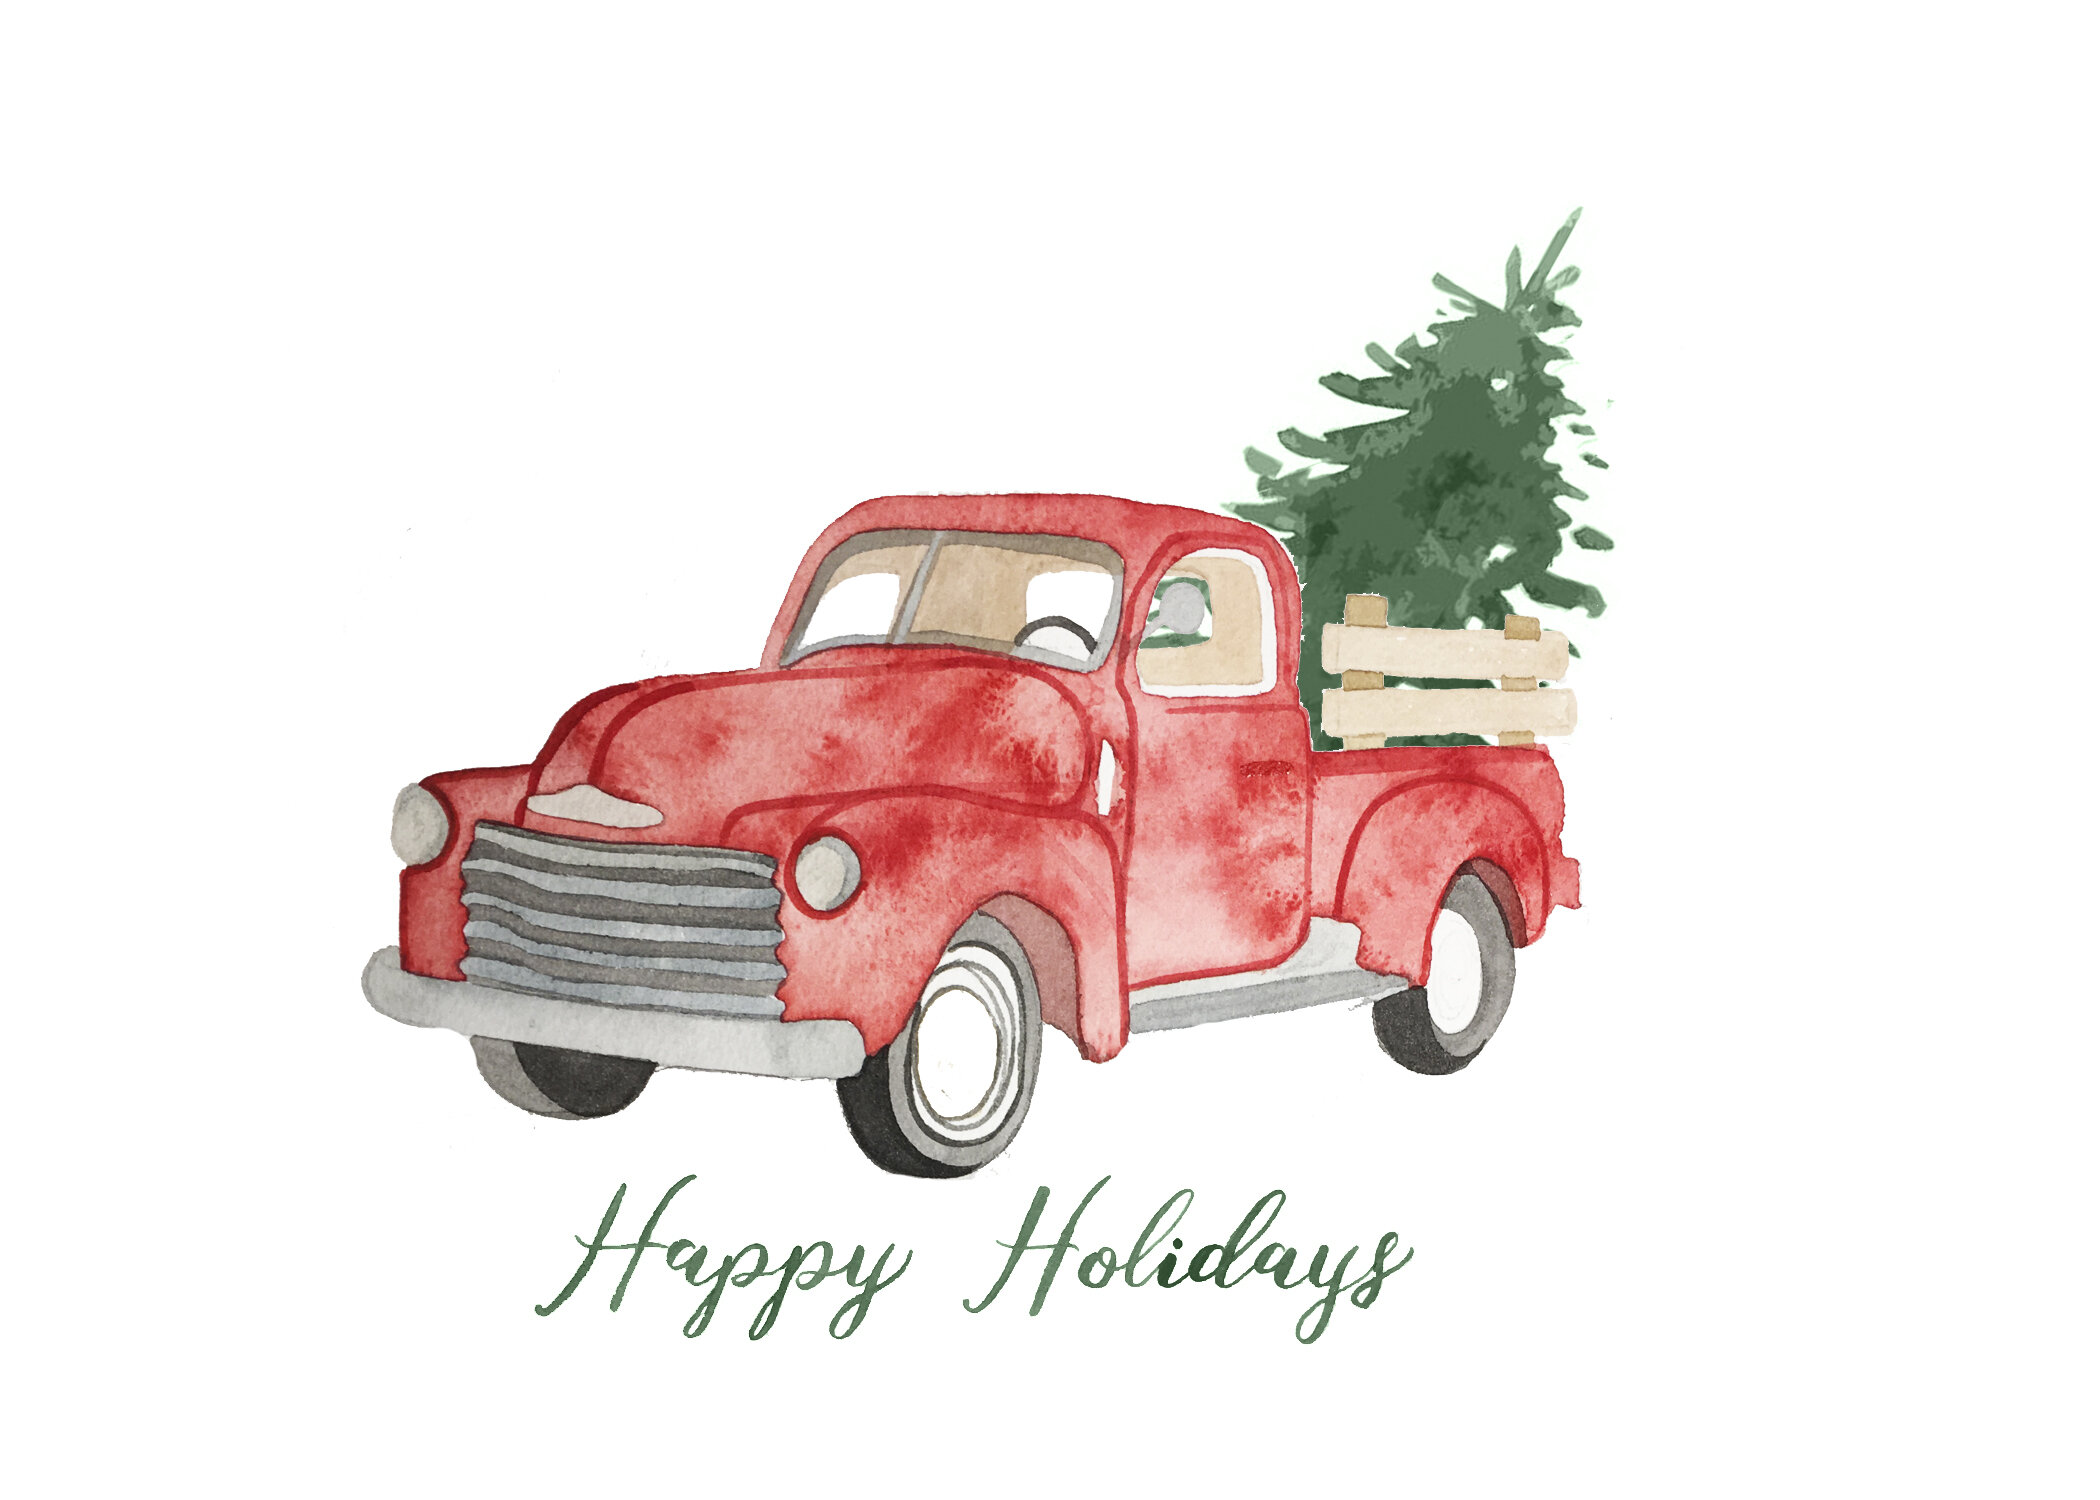 Red Truck Watercolor Christmas Card Miller Me Design Co